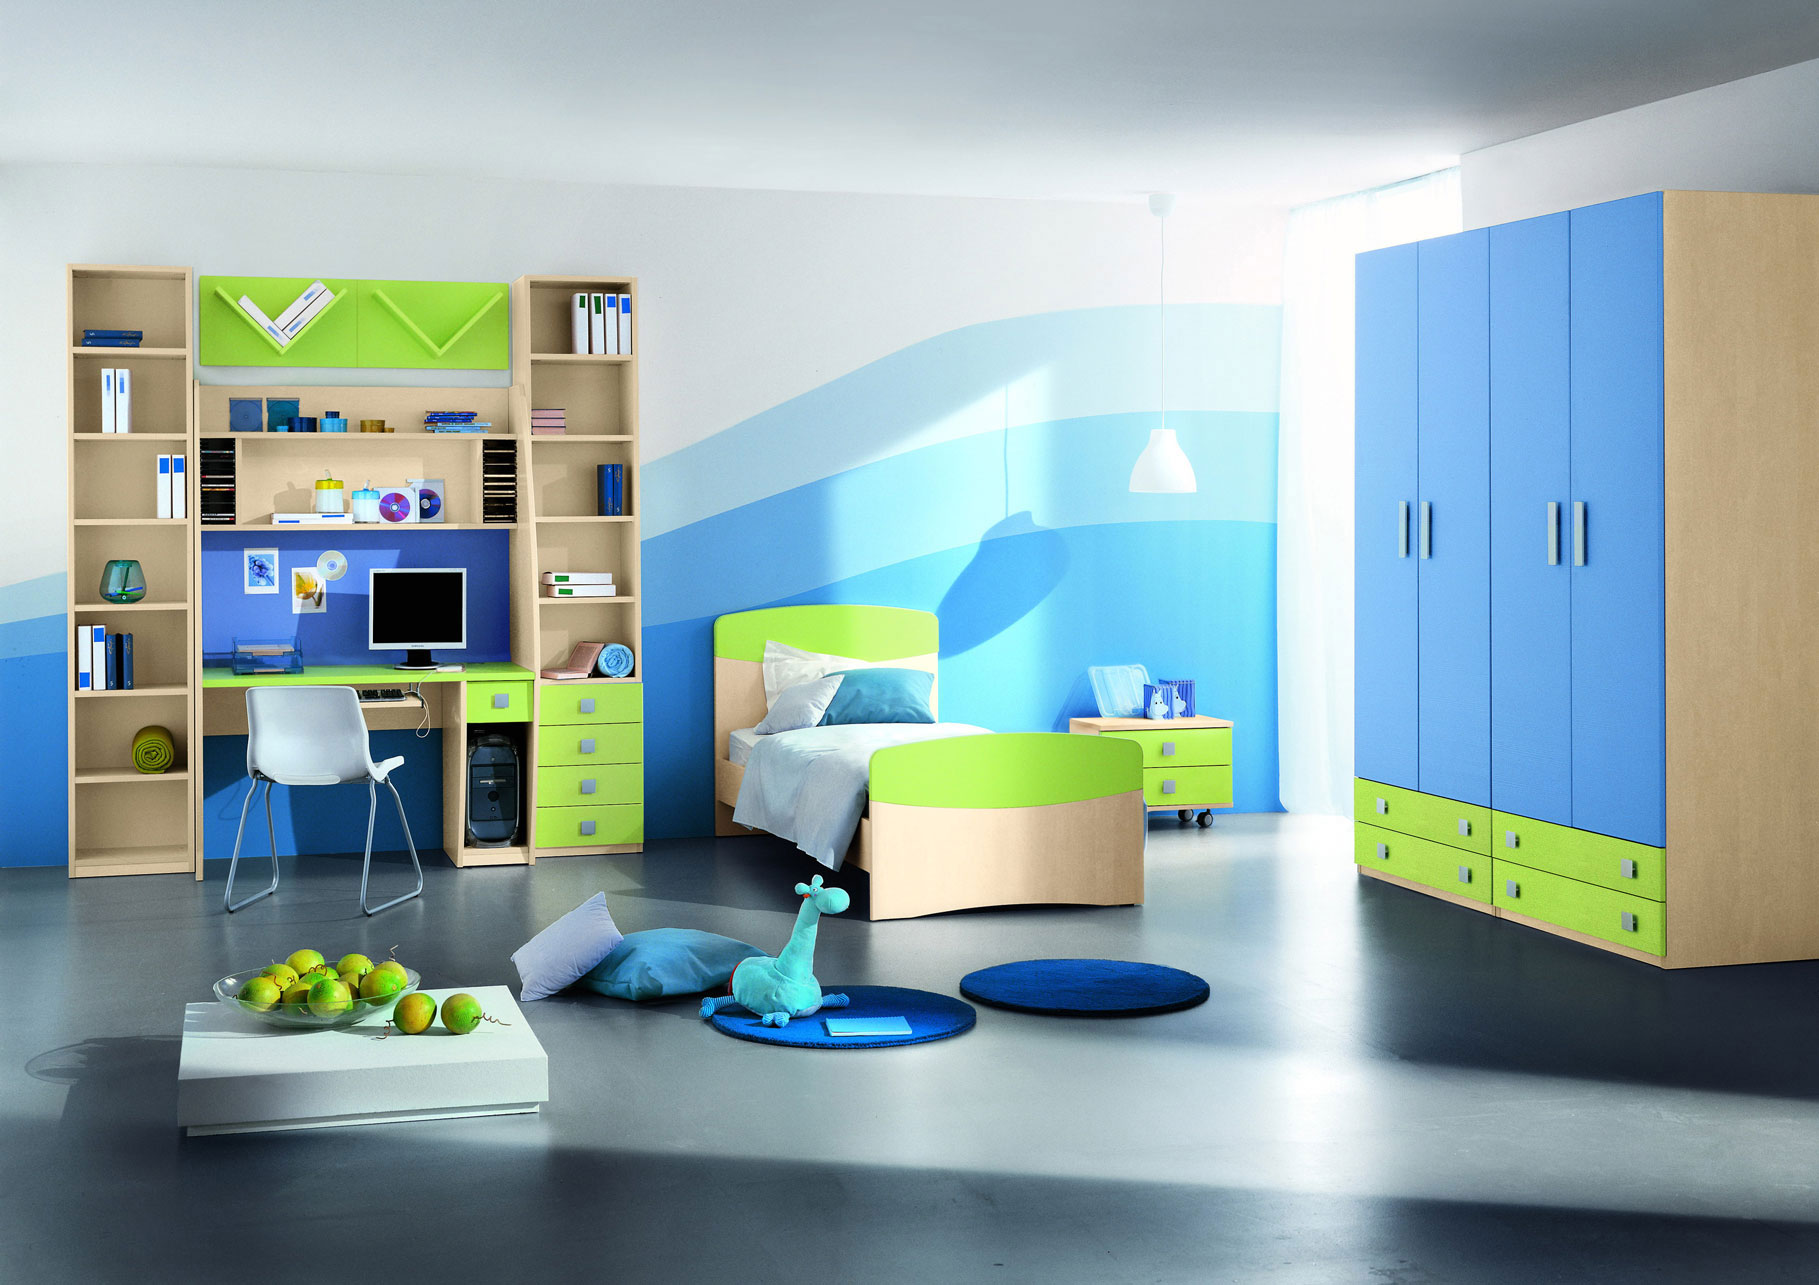 Excellent Blue Bedroom Ideas for Boys Room 1819 x 1285 · 287 kB · jpeg